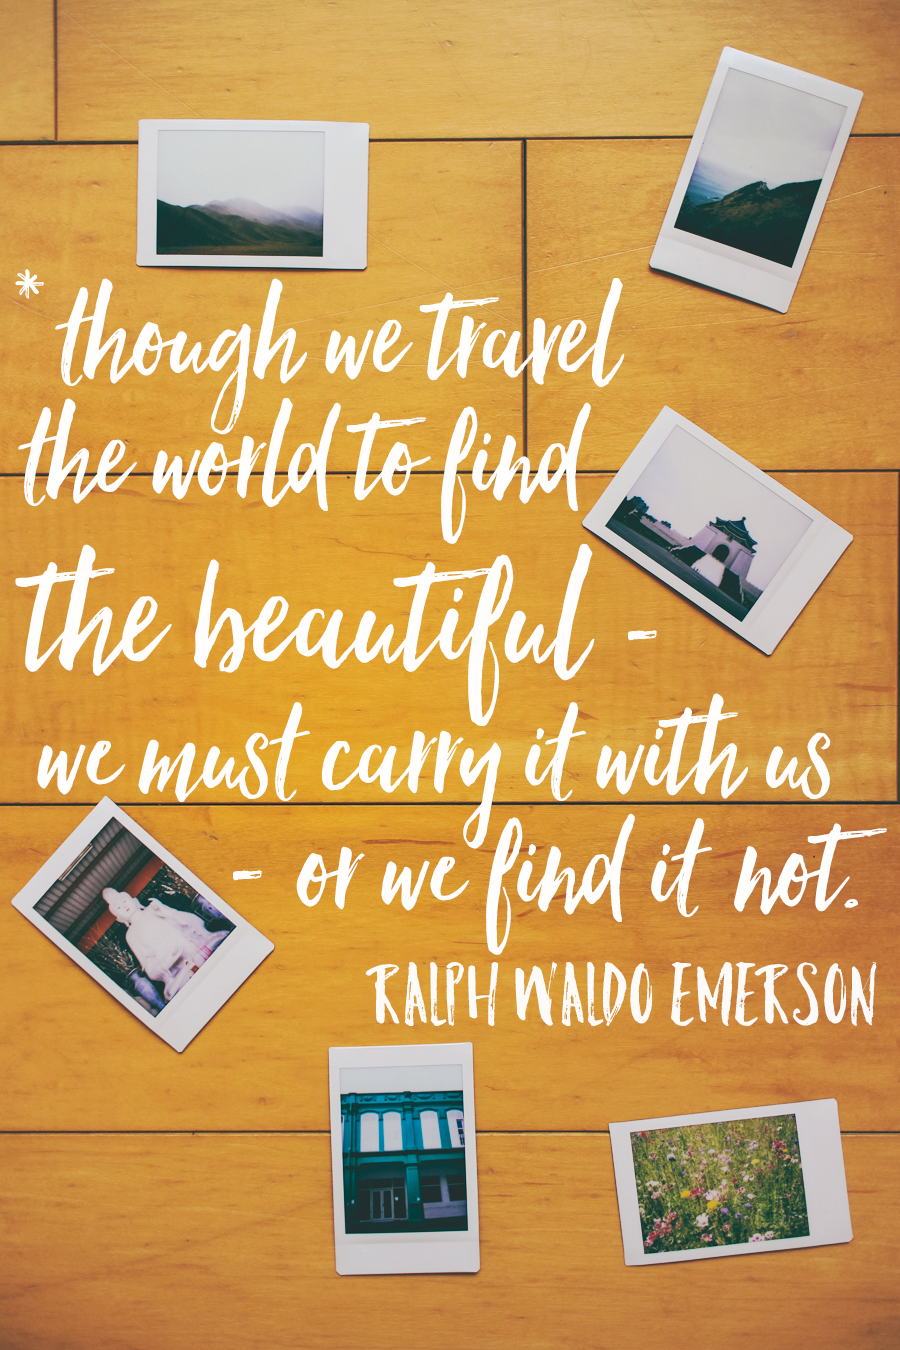 though we travel the world to find the beautiful, we must carry it with us, or we find it not. Ralph Waldo Emerson